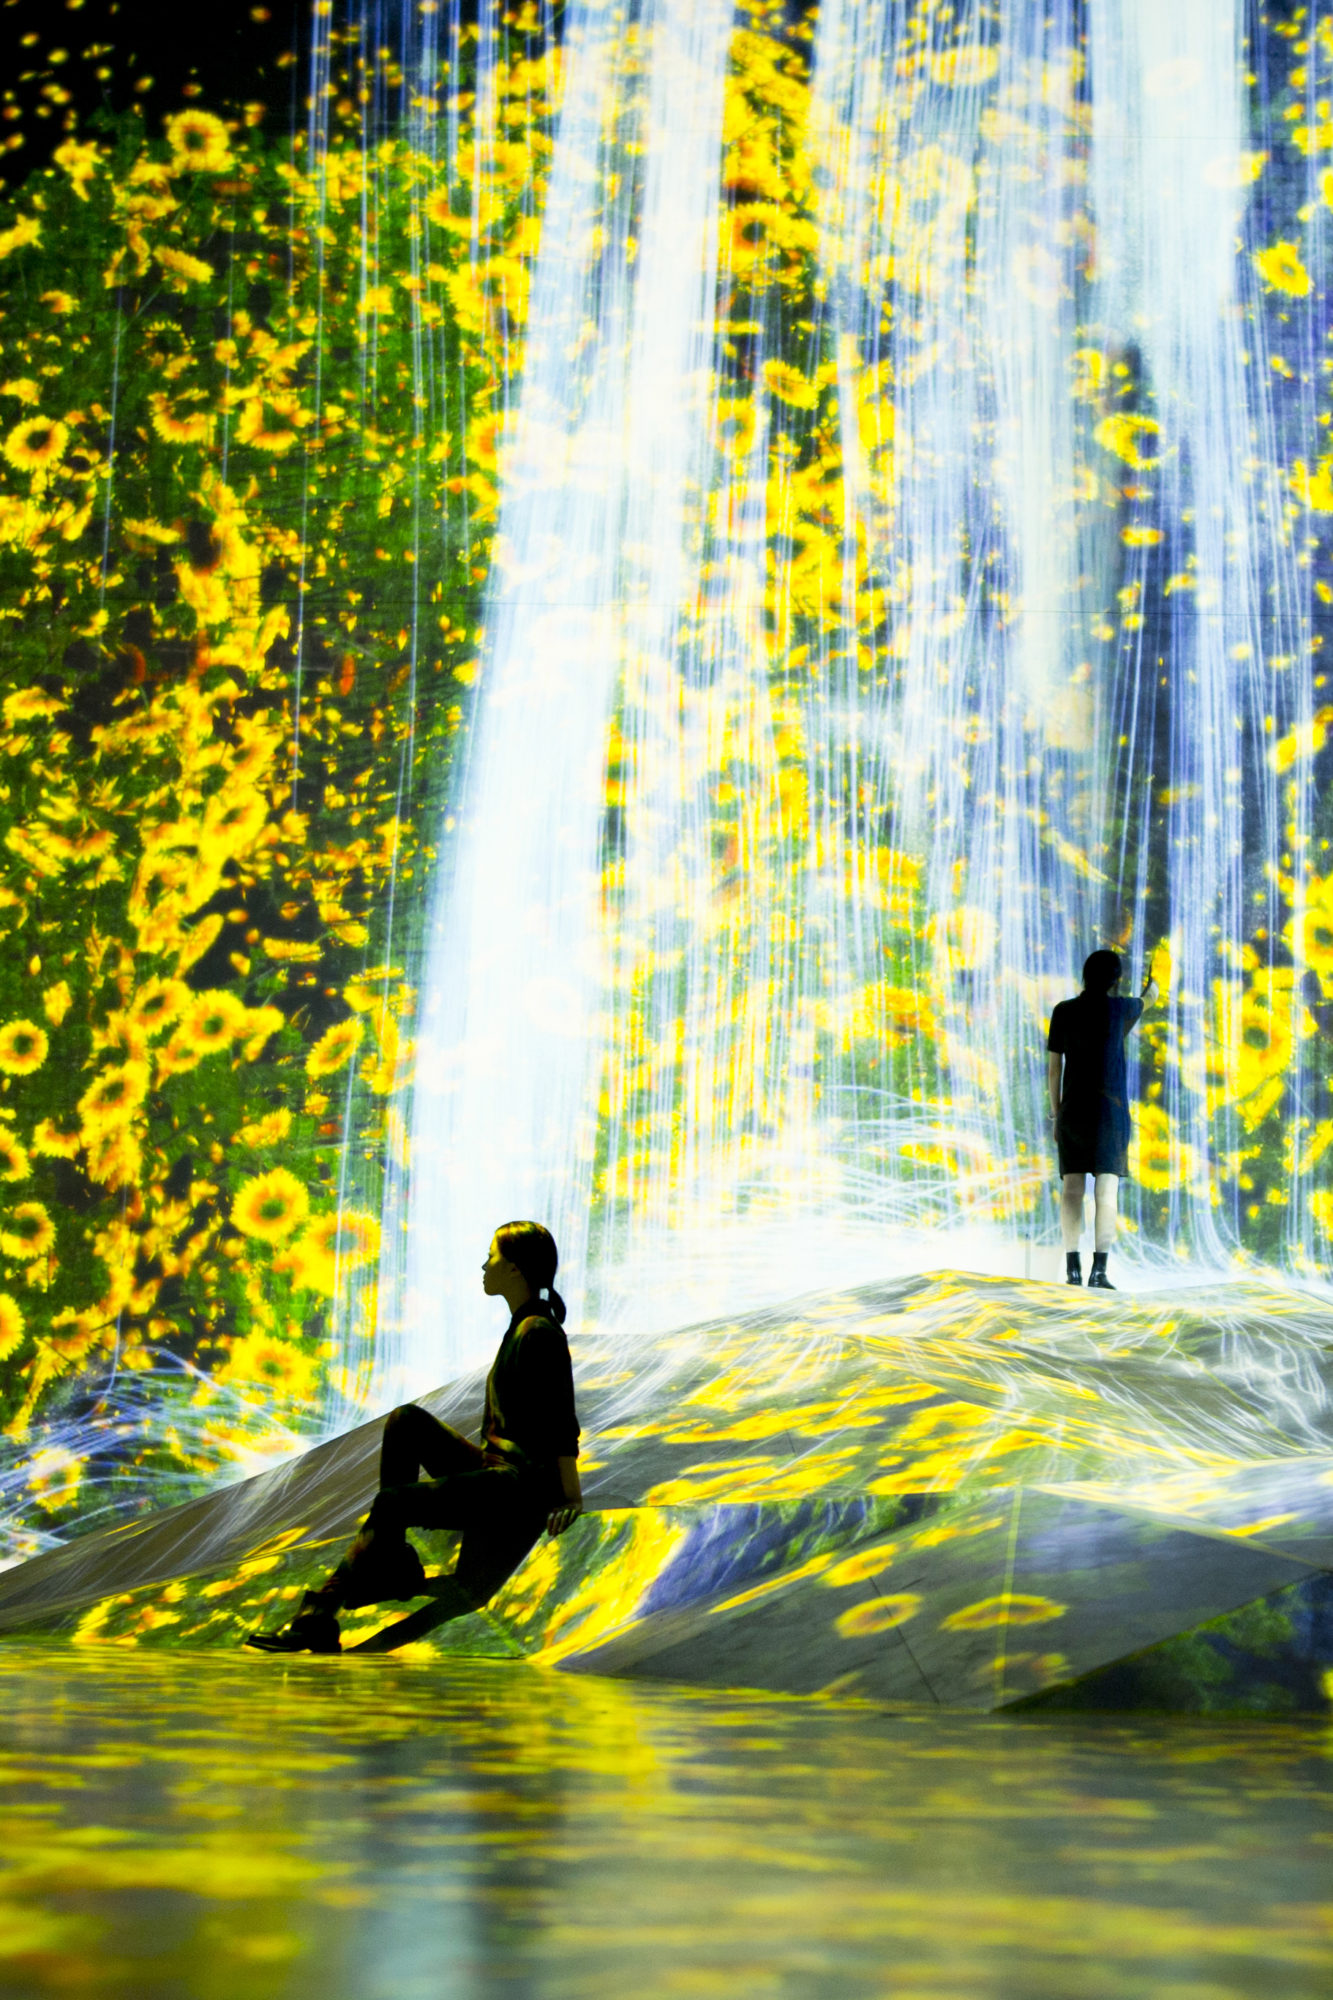 teamLab Borderless World - Universe of Water Particles on a Rock where People Gather